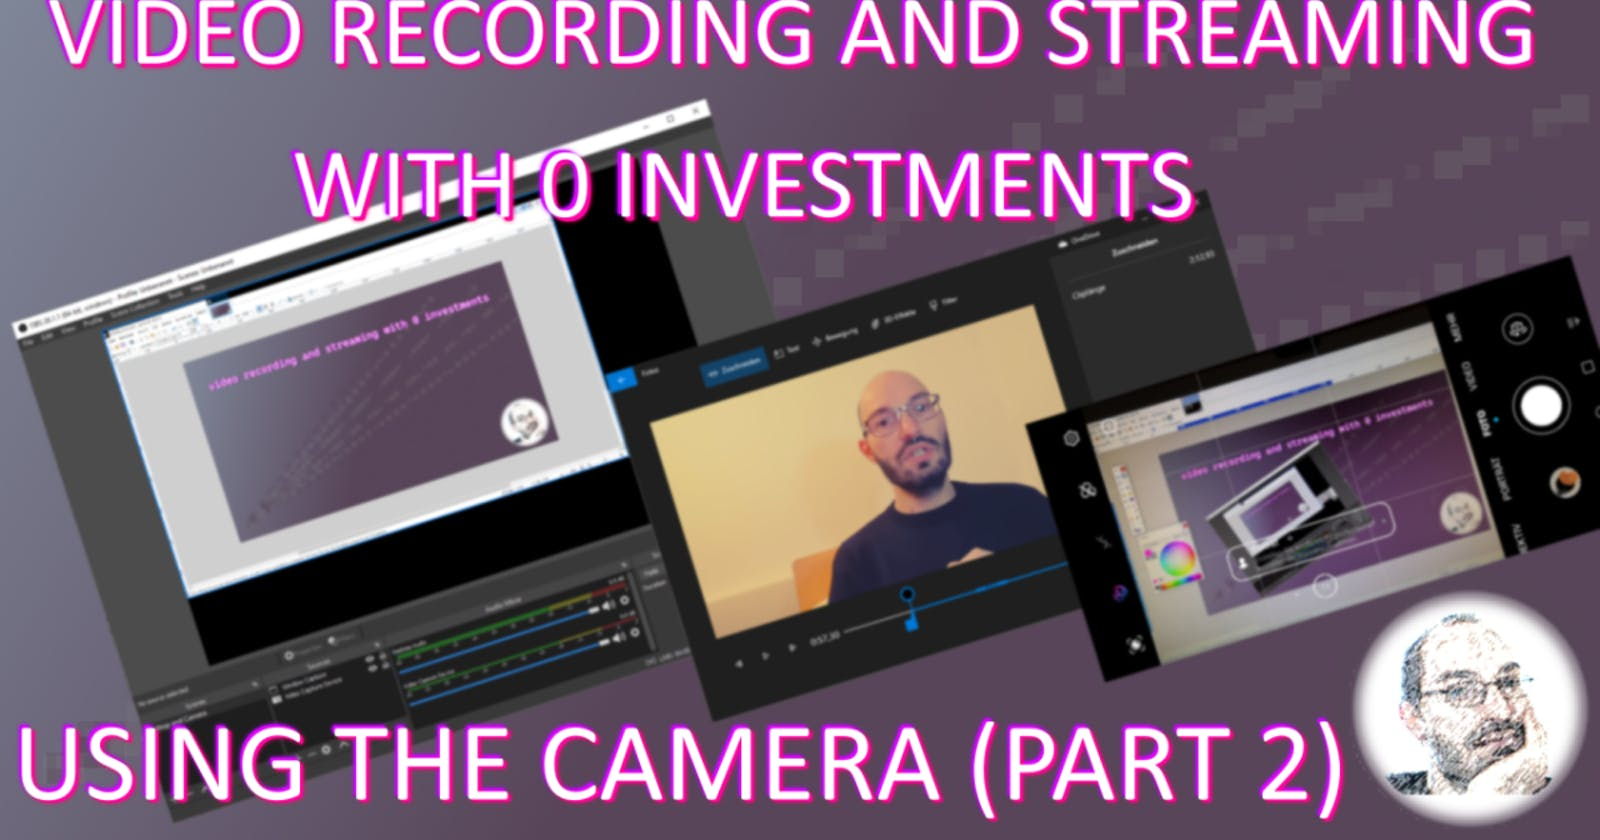 Video recording and streaming with 0 investments - show yourself with the camera